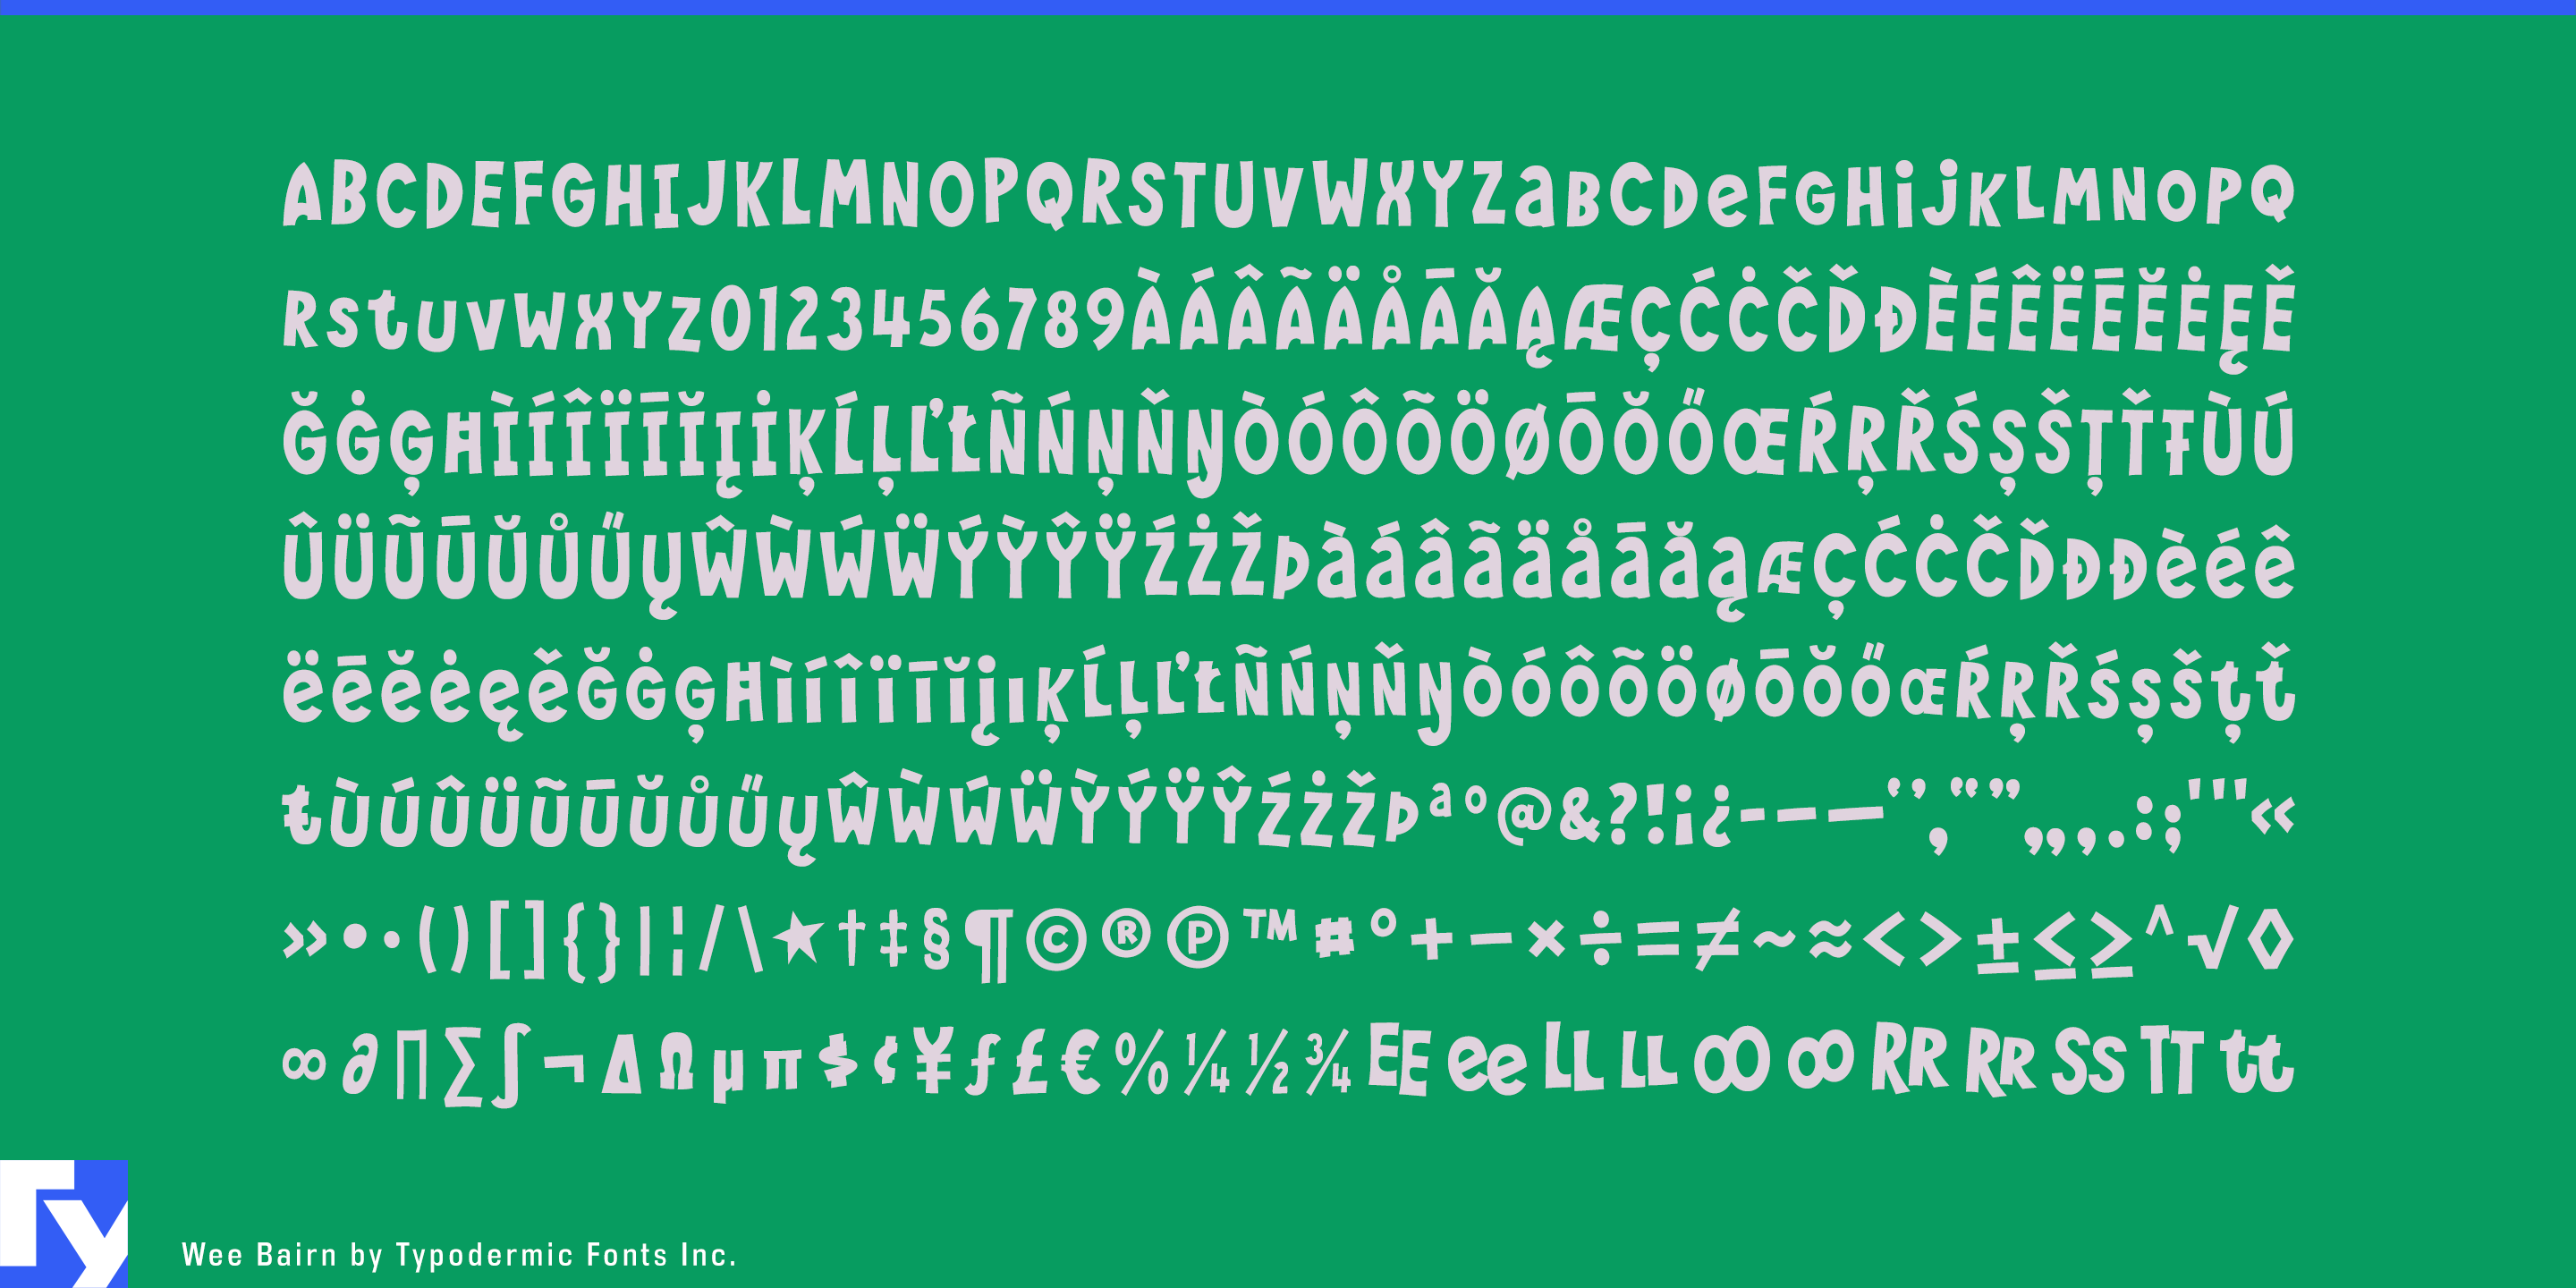 Wee Bairn typeface sample from Typodermic Fonts Inc.